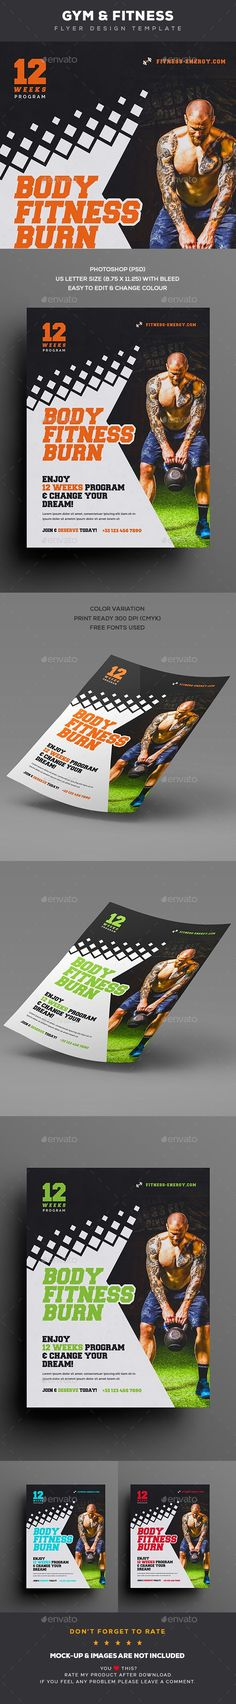 Pizza - Template for Poster \/ Flyer Flyer template, Pizzas and - Gym Brochure Templates